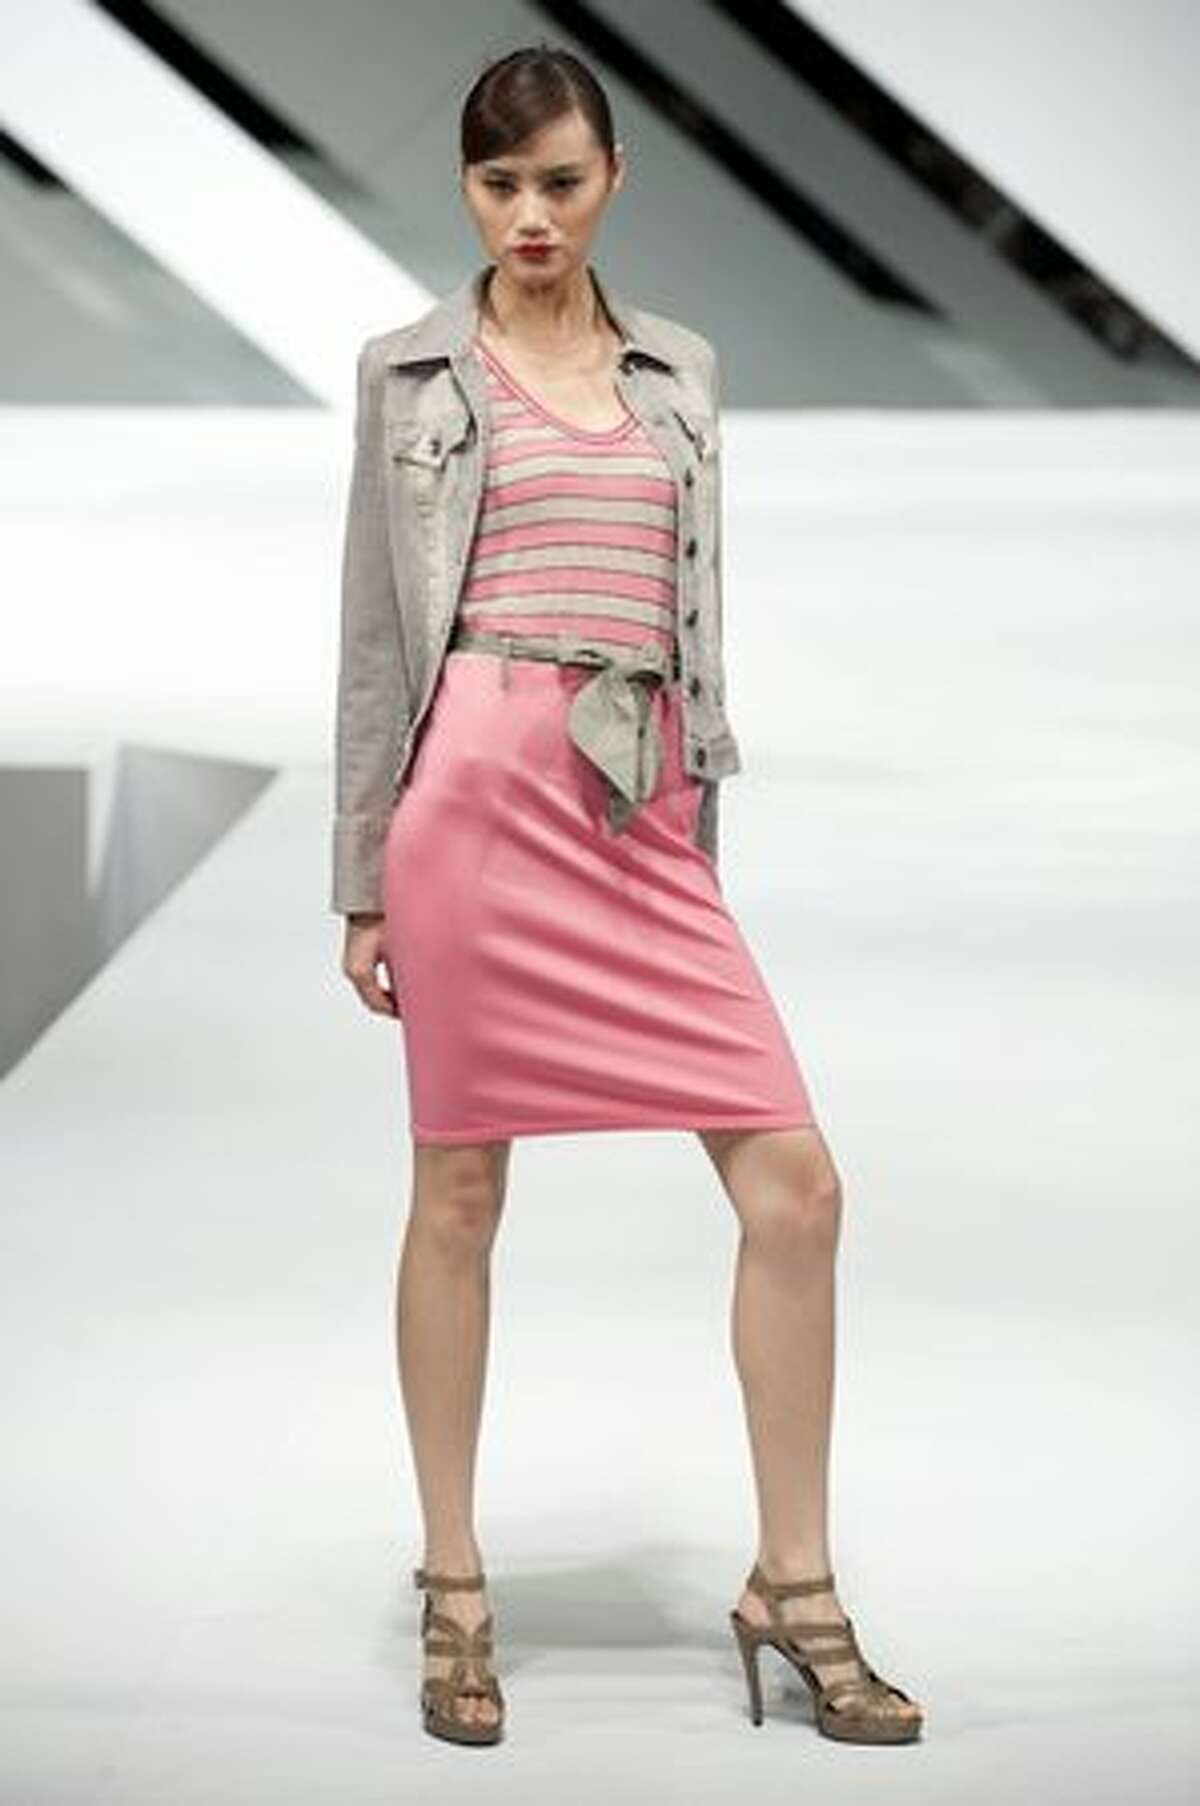 A model showcases a design by William Tang on the catwalk during the Marccain show as part of the Hong Kong Fashion Week fall/winter 2010 on Monday, Jan. 18, 2010 in Hong Kong.